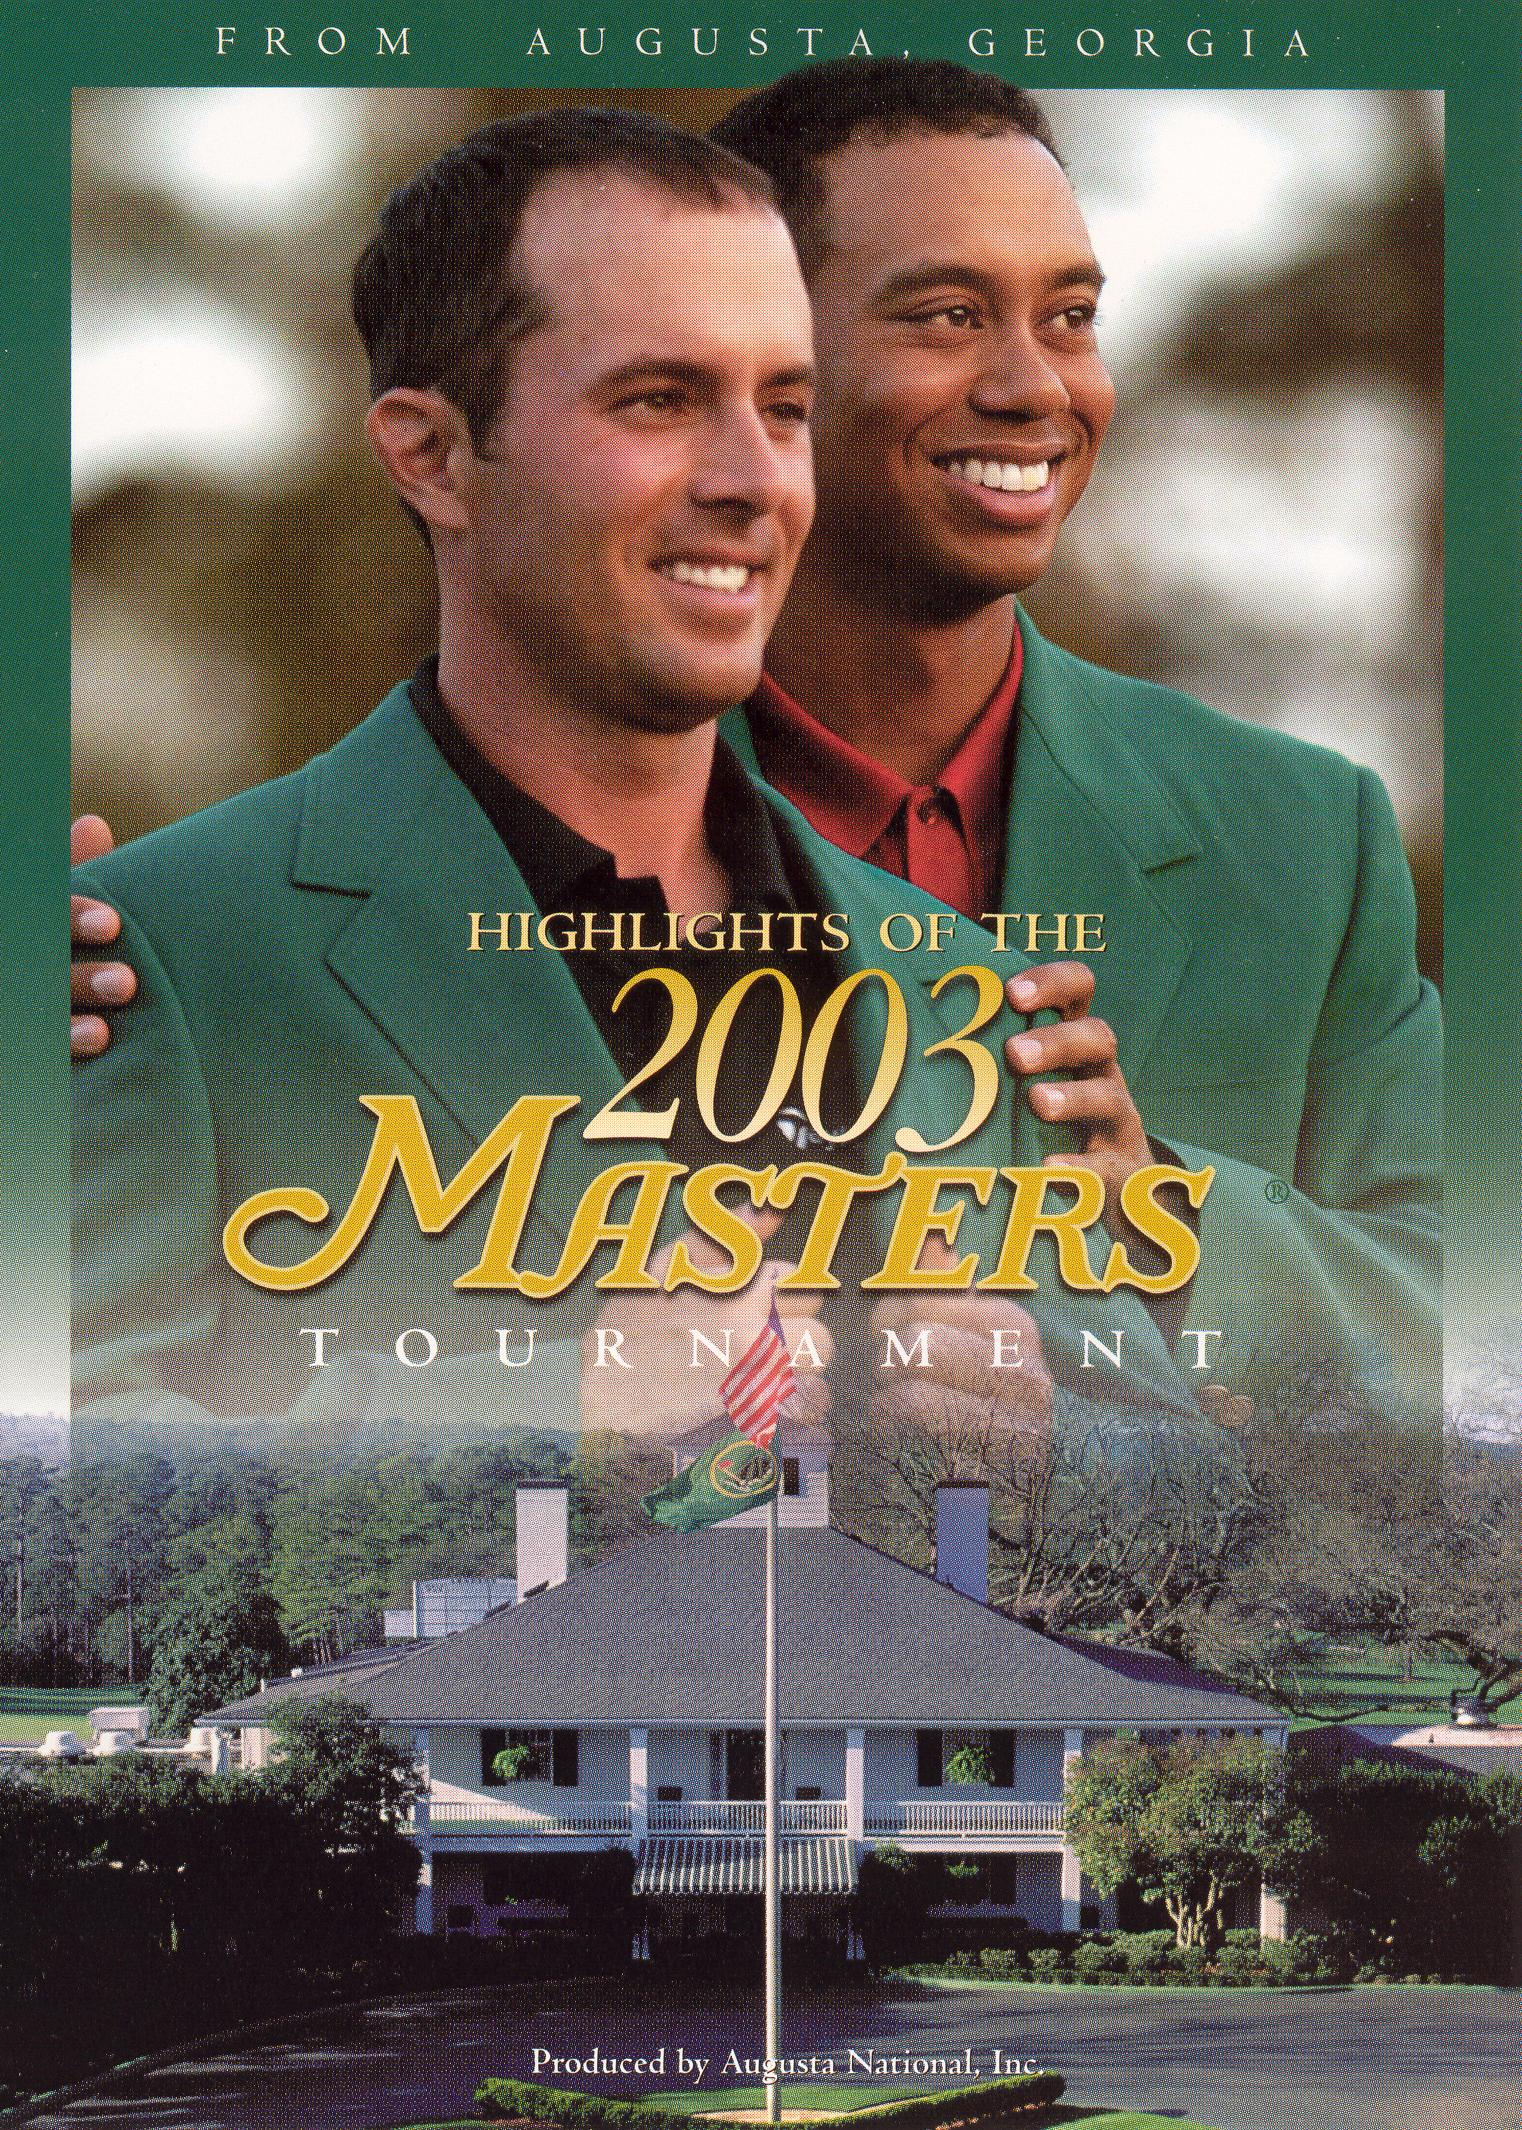 PGA: Highlights of the 2003 Masters Tournament